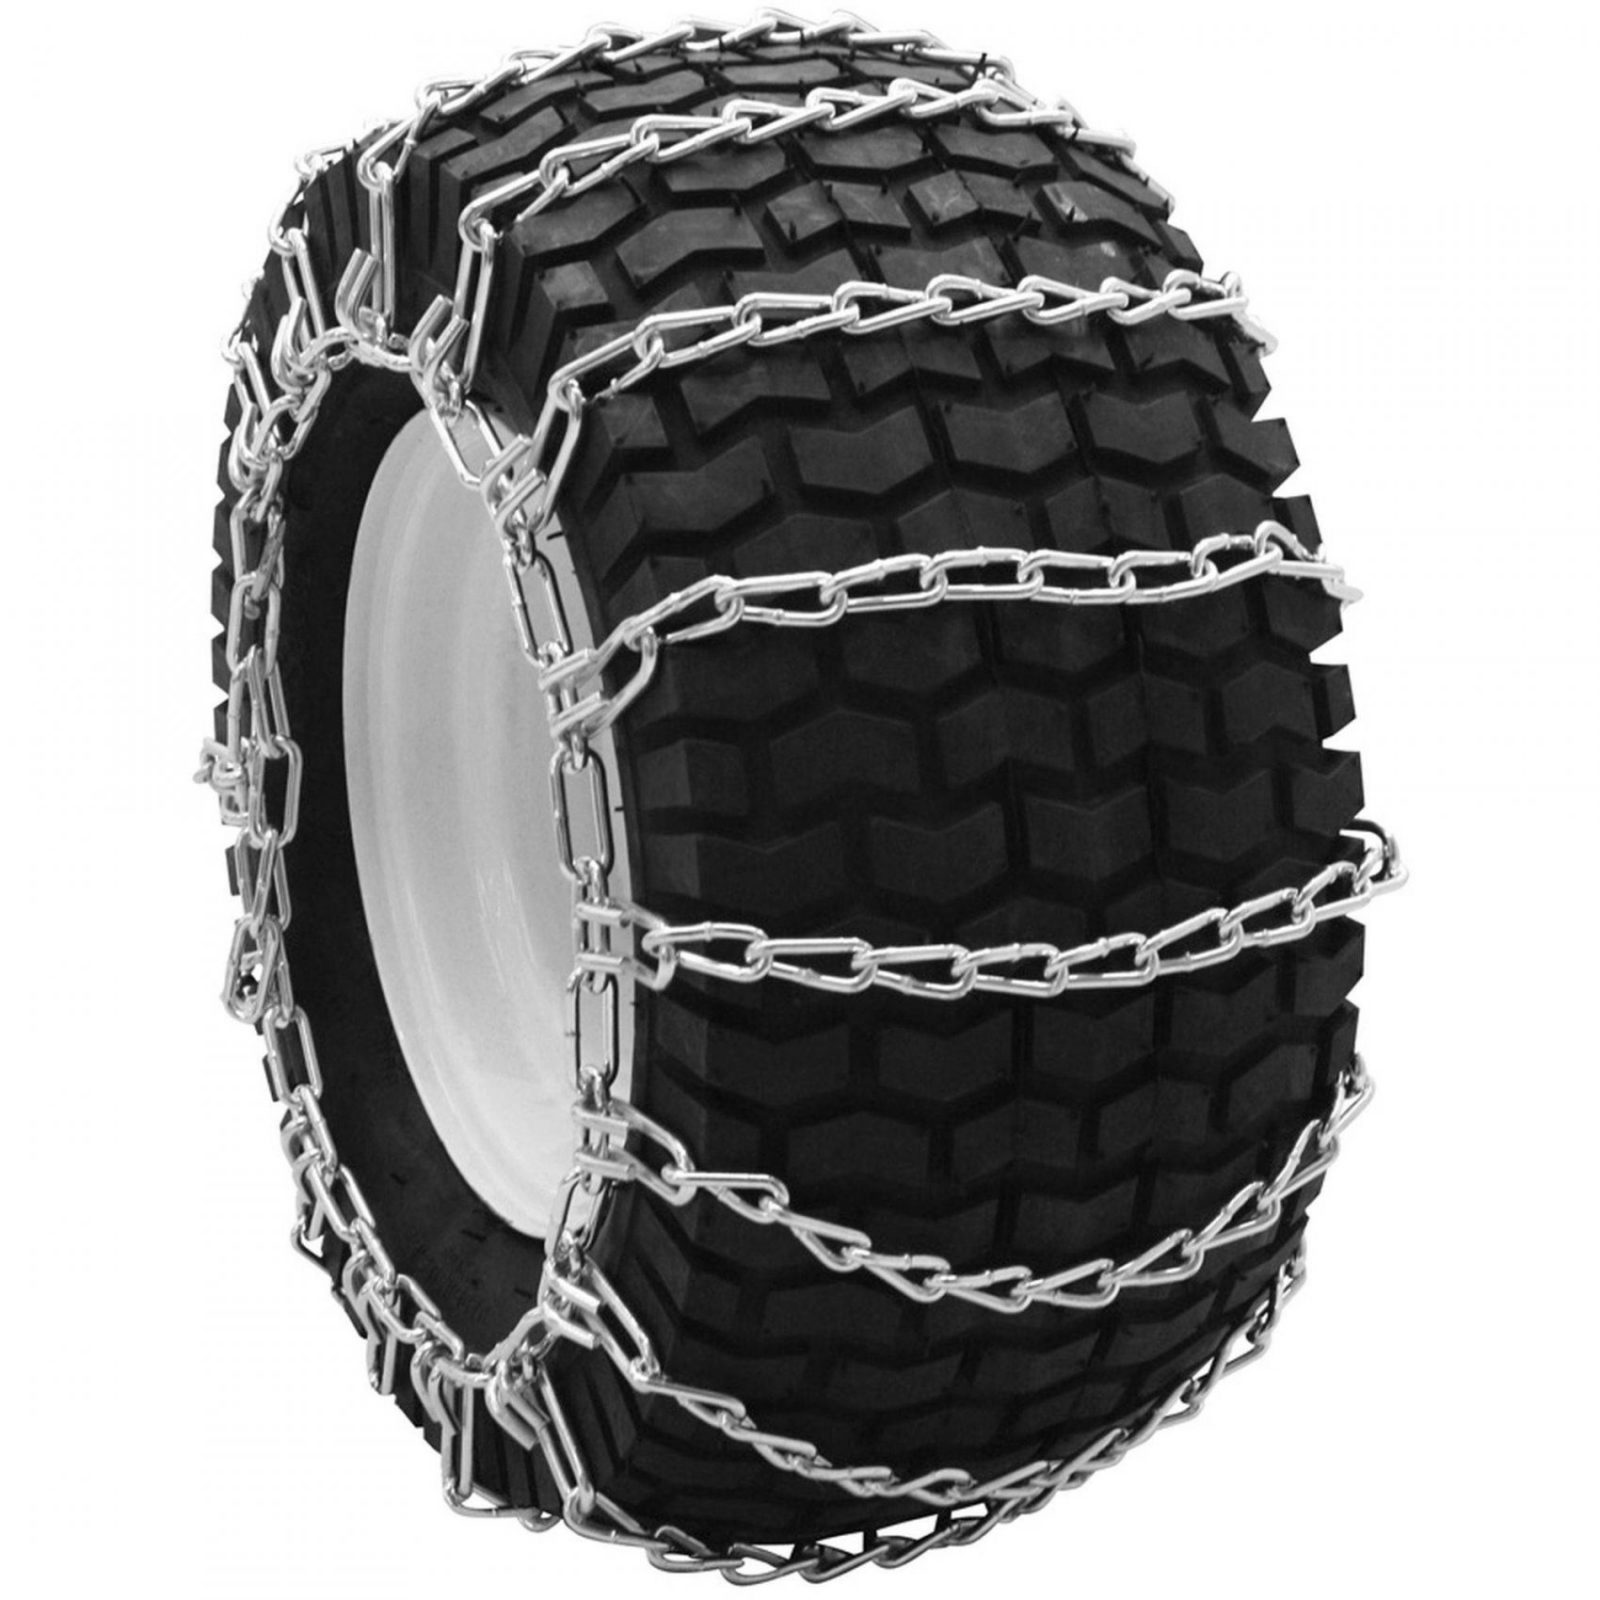 Peerless Autotrac Light Trucksuv Tire Chains 232110  Walmart von Nickymood Mf Nicky Wendebettwäsche Bild